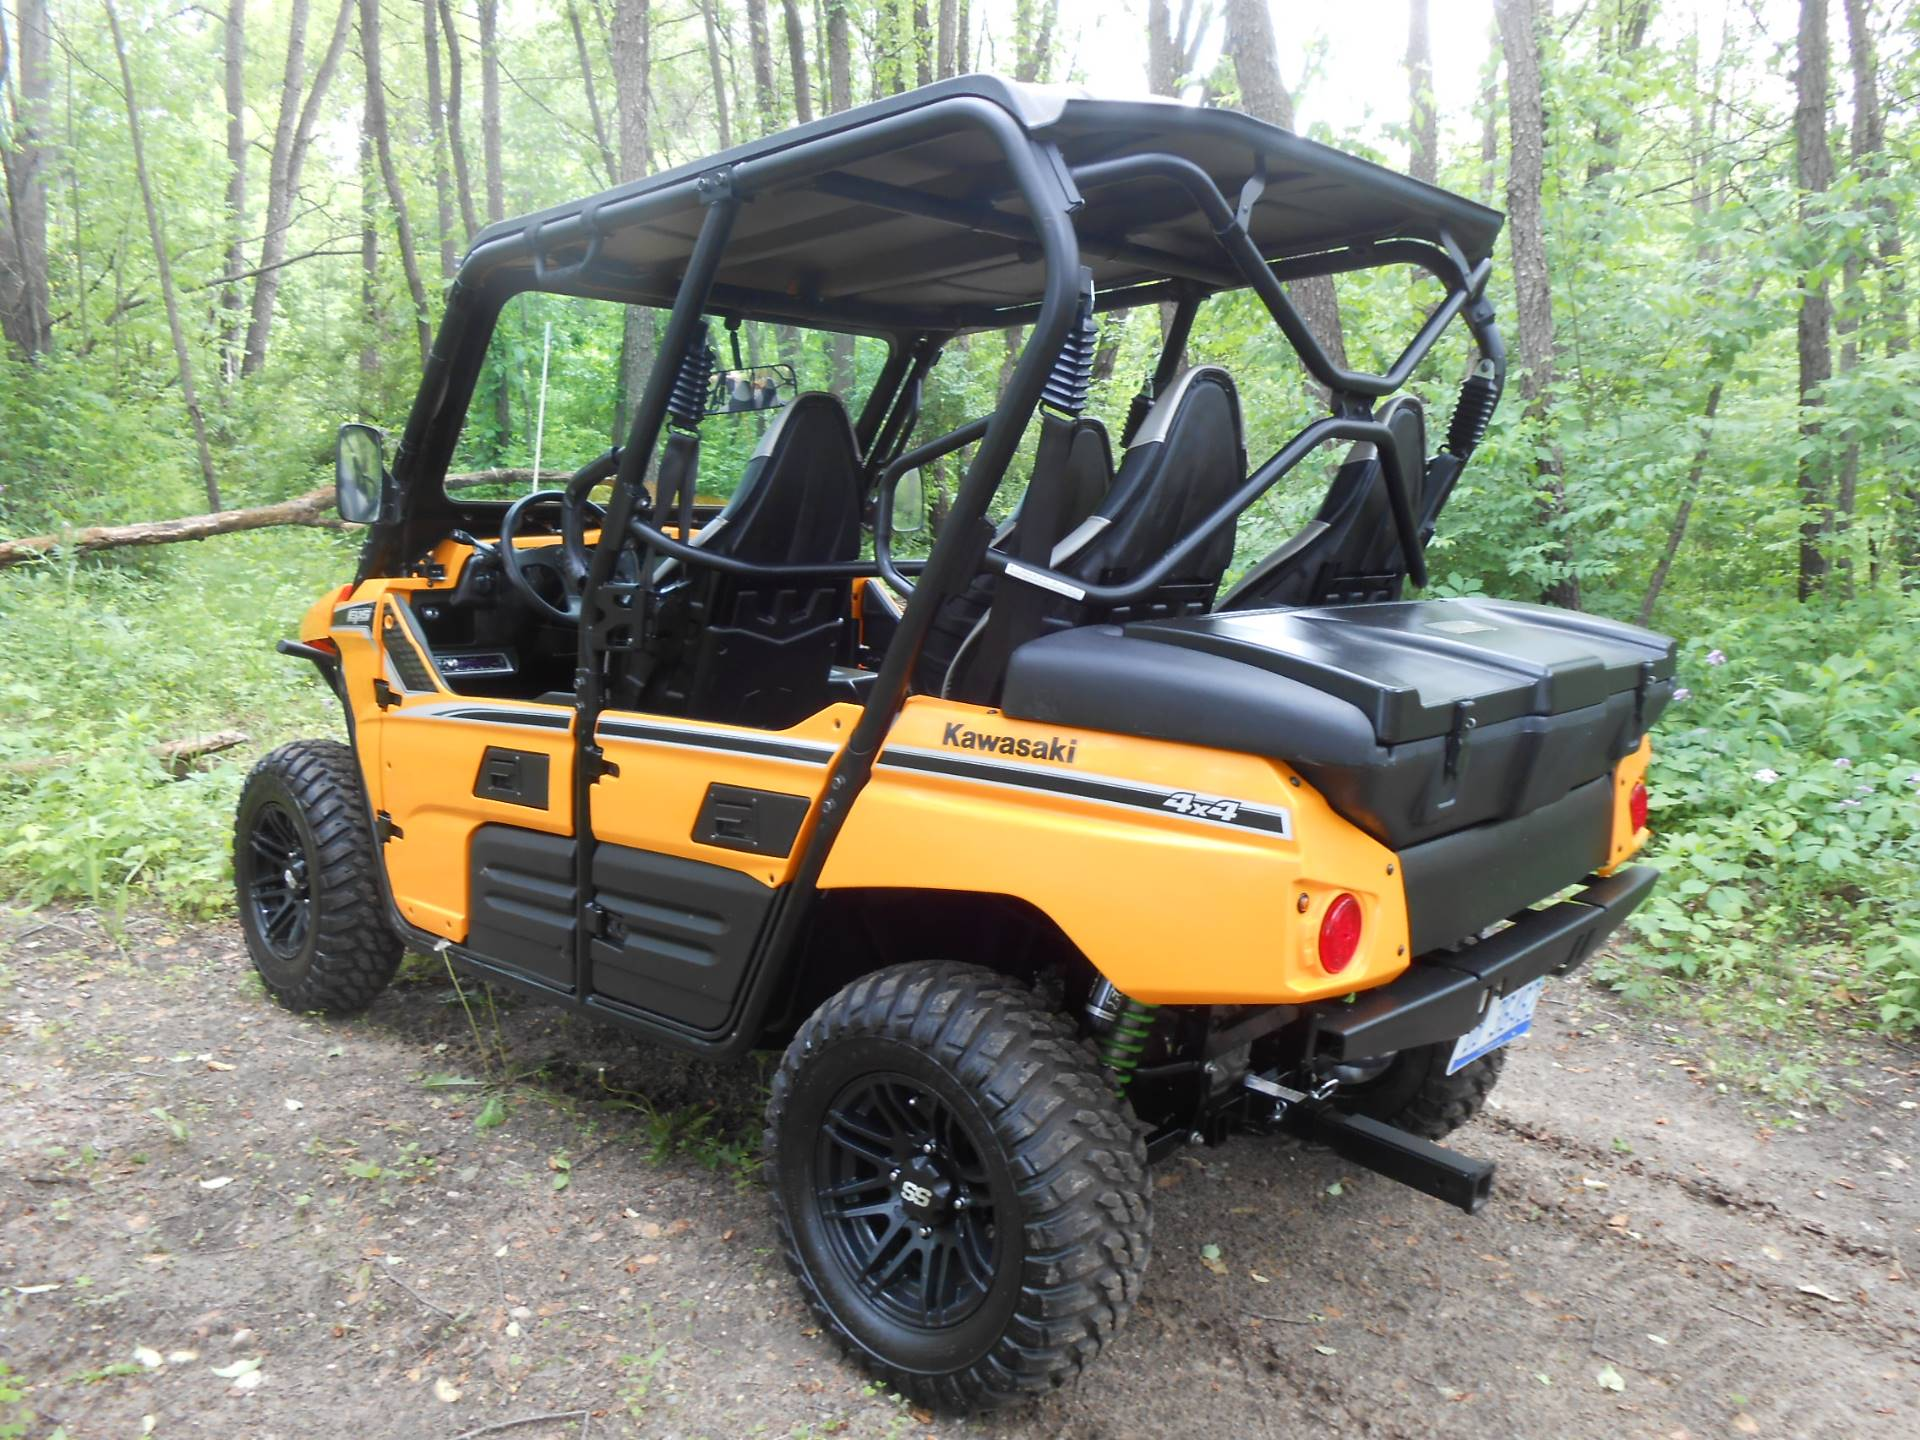 2013 Kawasaki Teryx4™ 750 4x4 EPS LE in Howell, Michigan - Photo 6